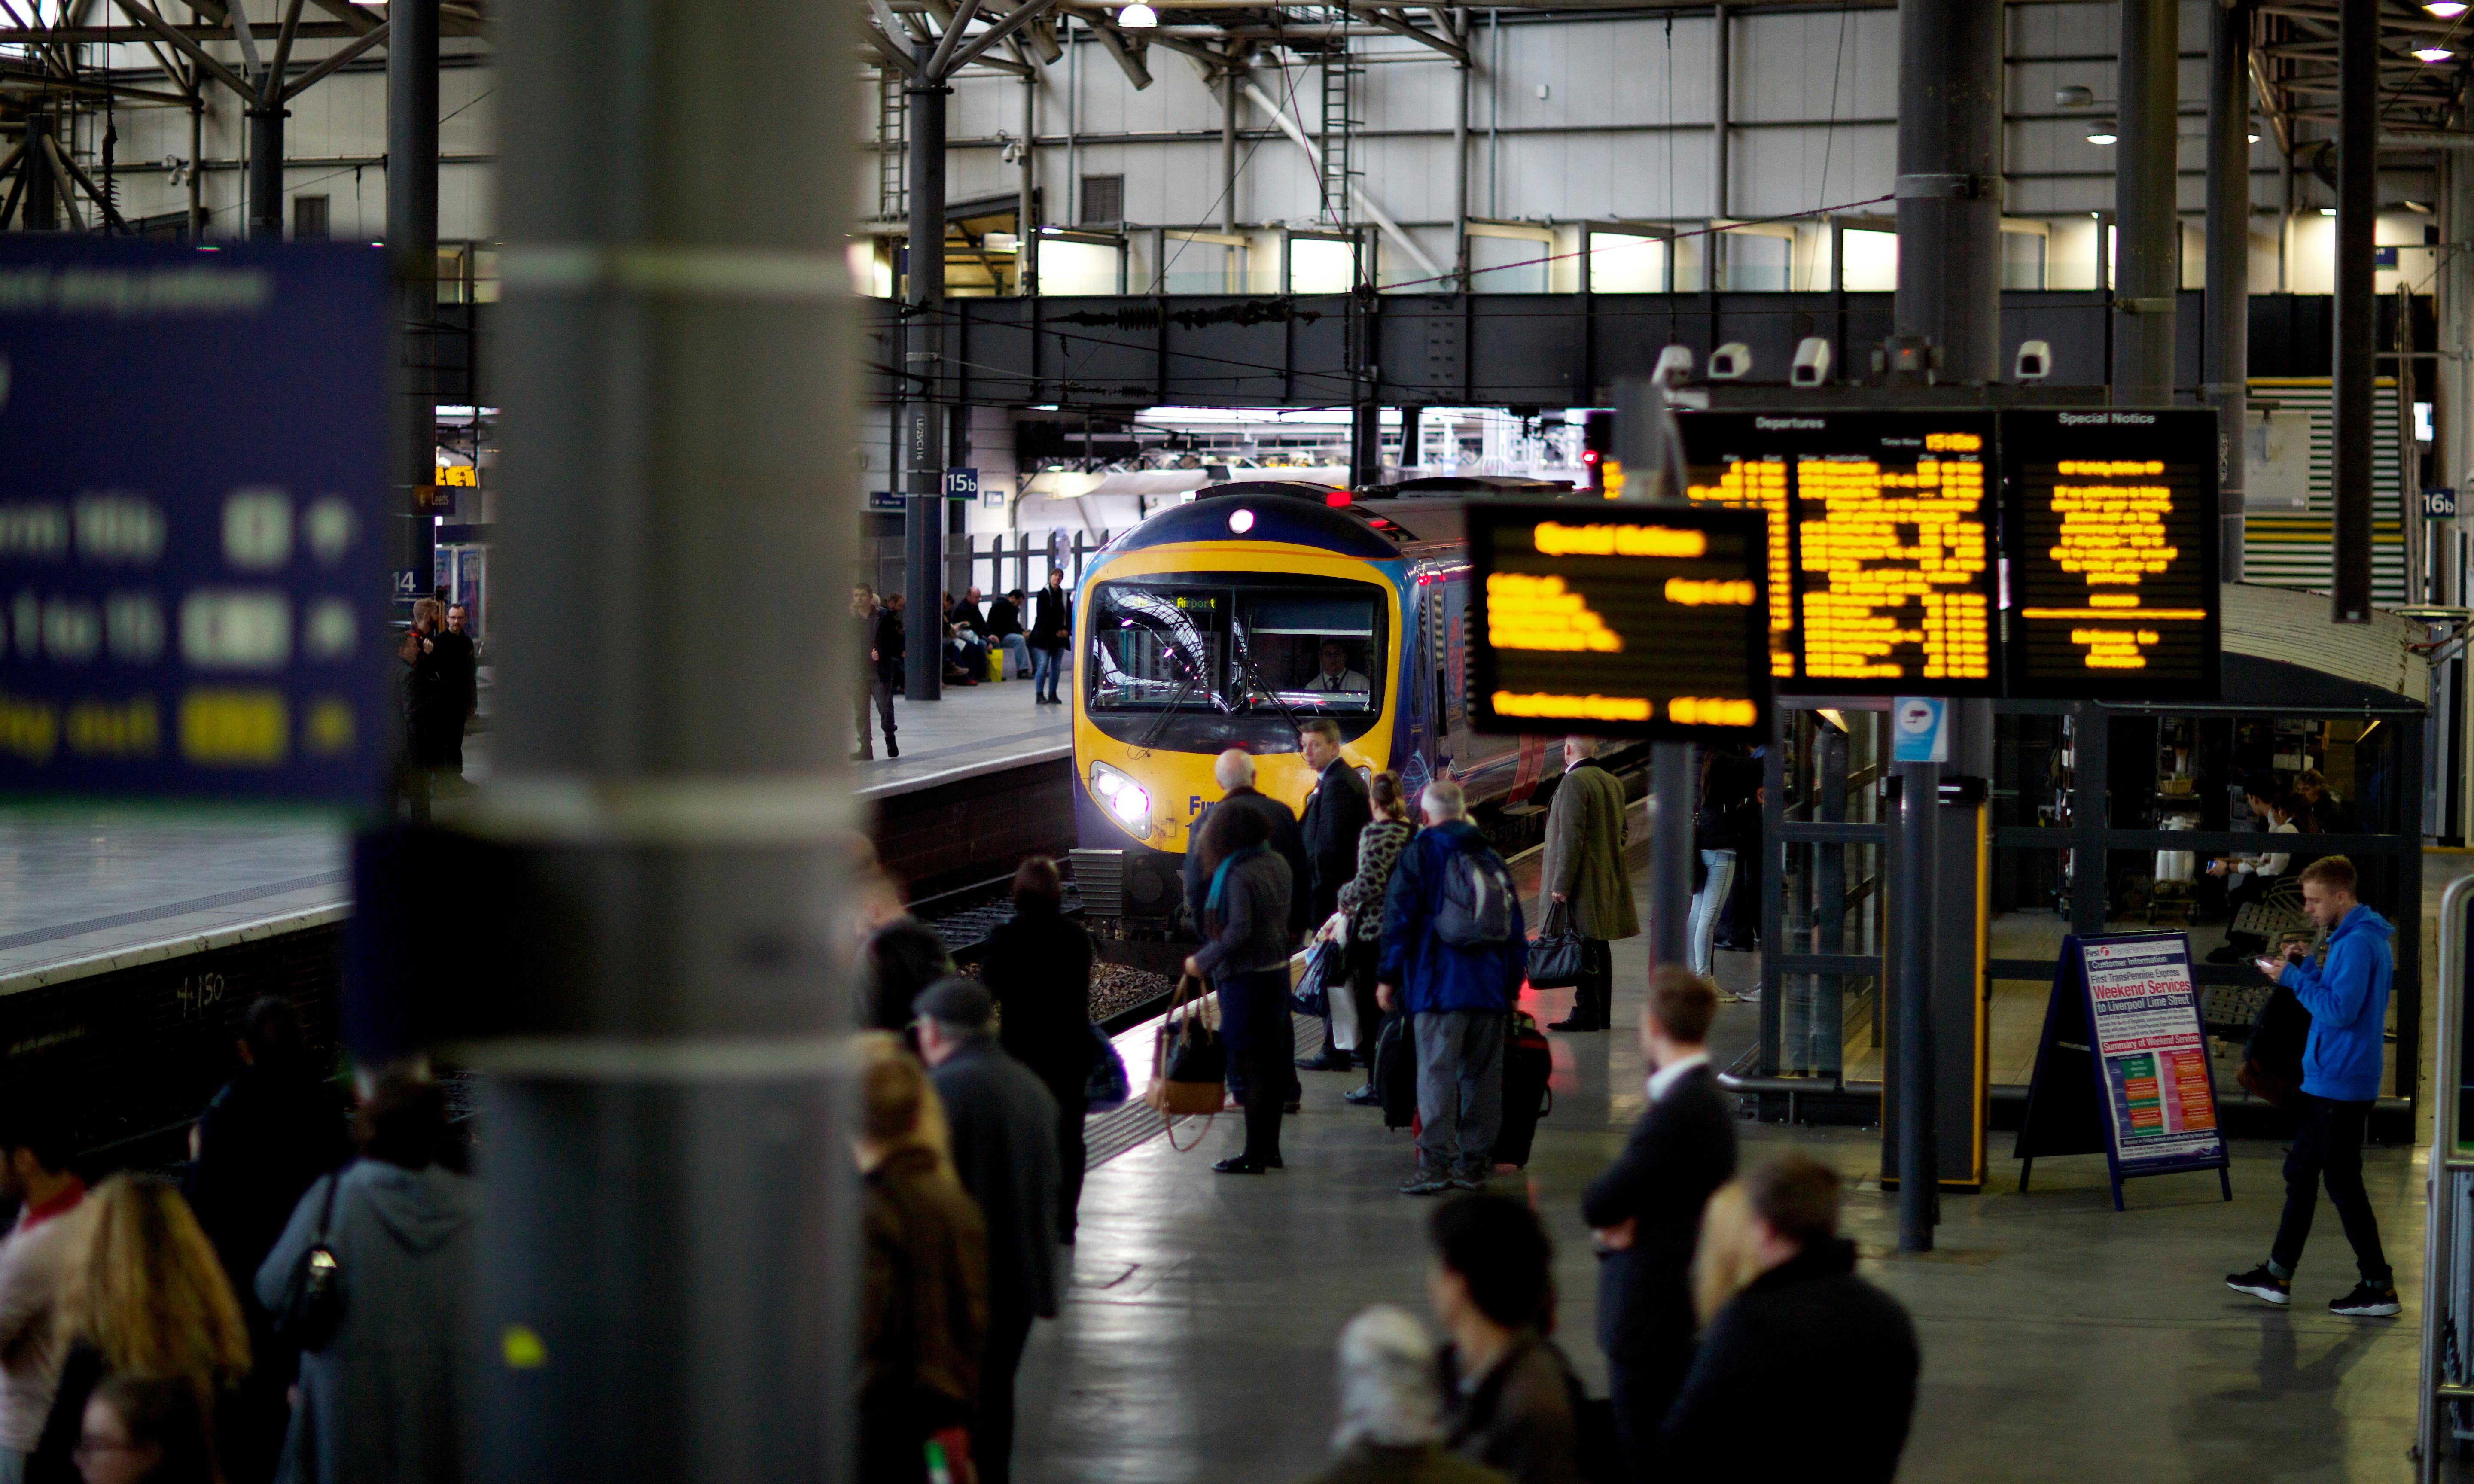 London to get triple northern England's transport spending, says thinktank